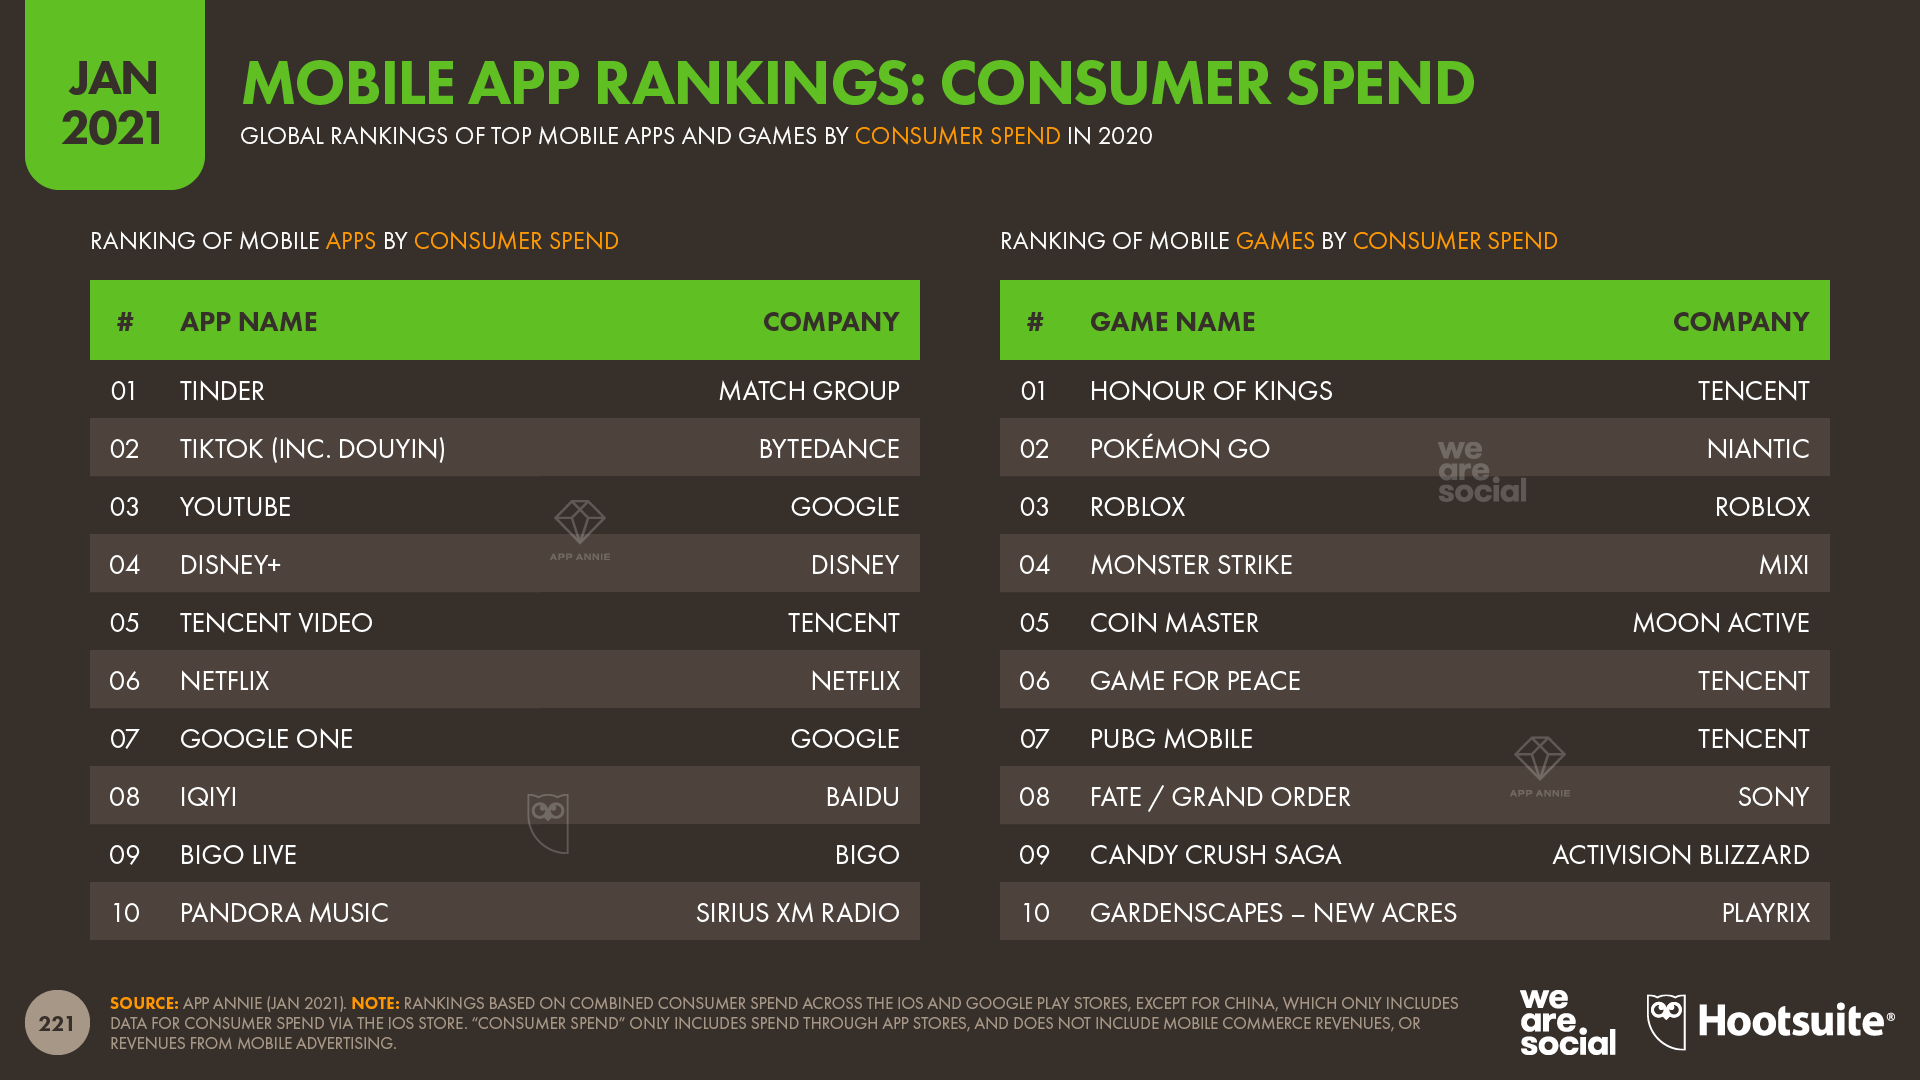 Top Mobile Apps by Consumer Spend in 2020 January 2021 DataReportal